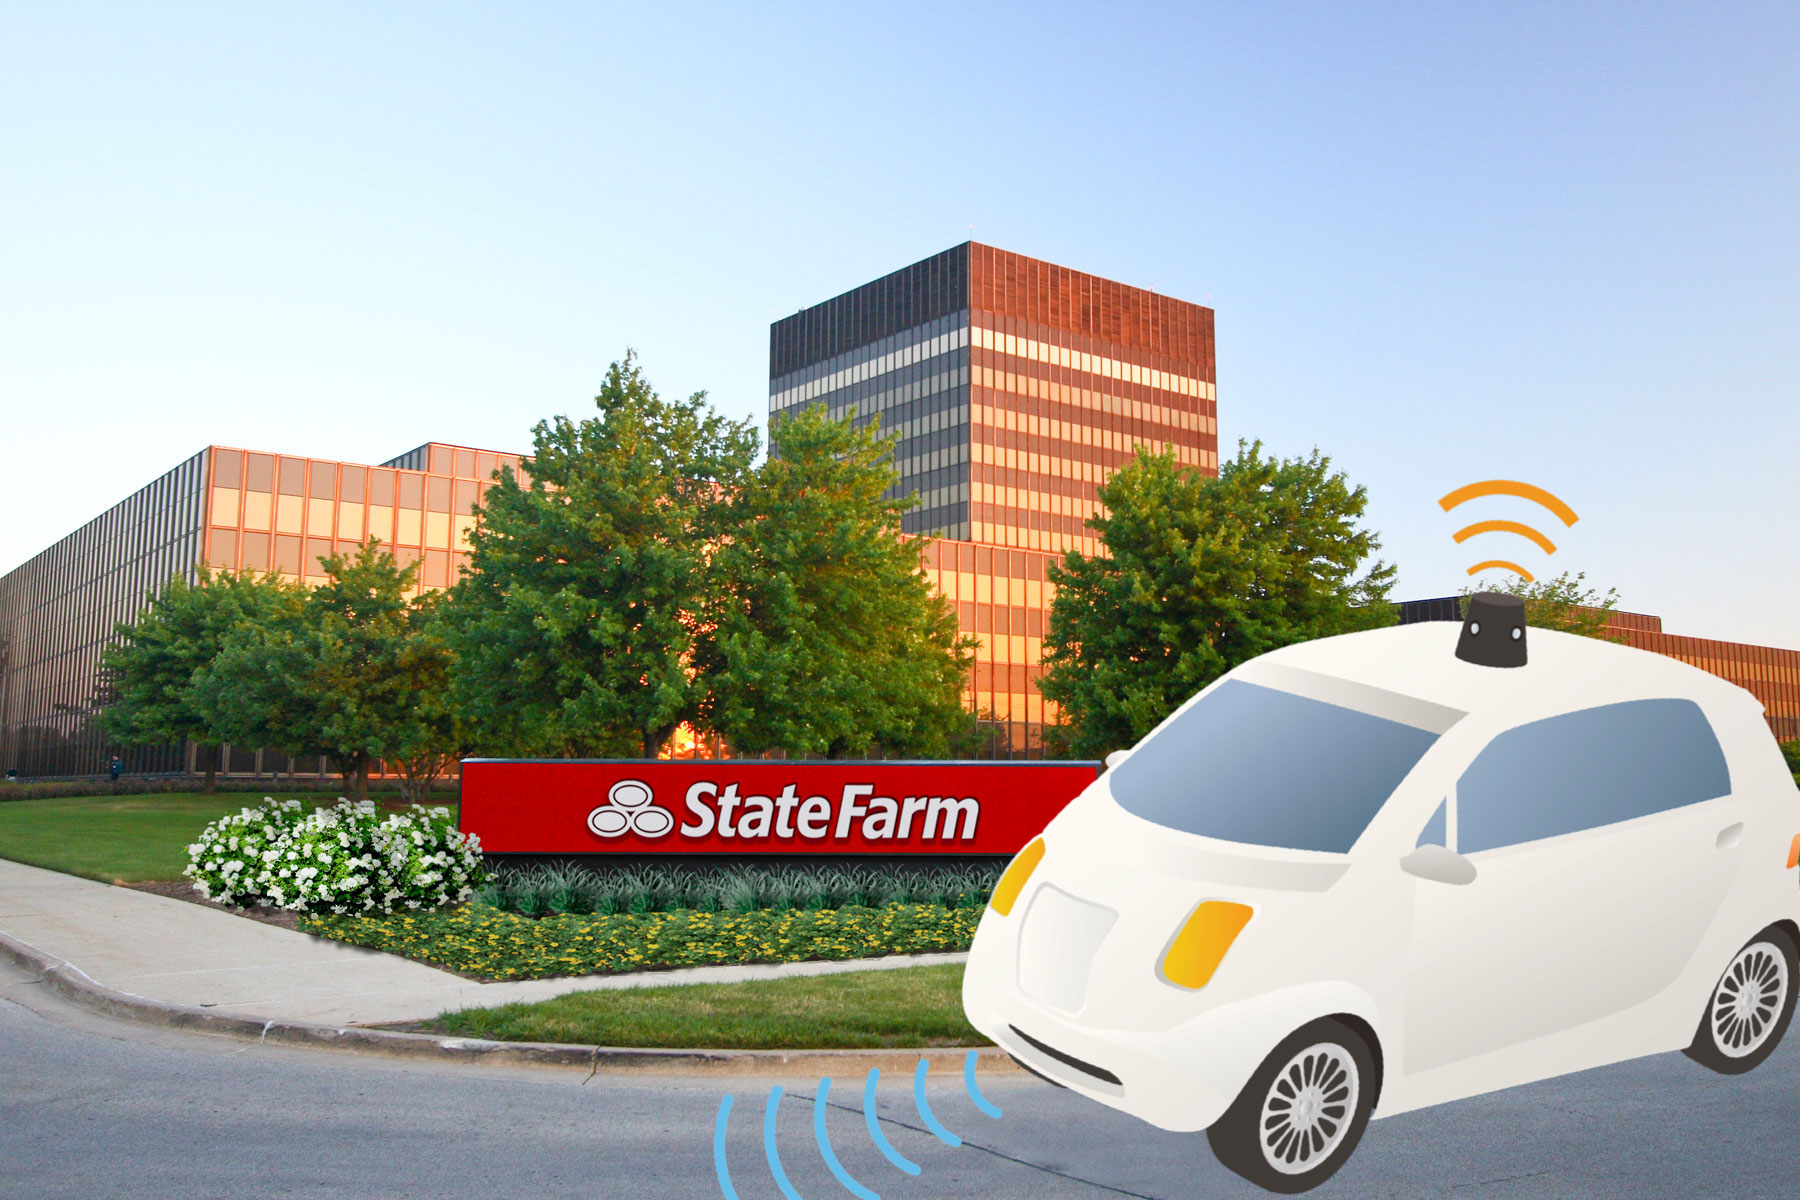 As Self-Driving Technology Approaches, Bloomington-Normal Can Shape State Farm's Next 100 Years -